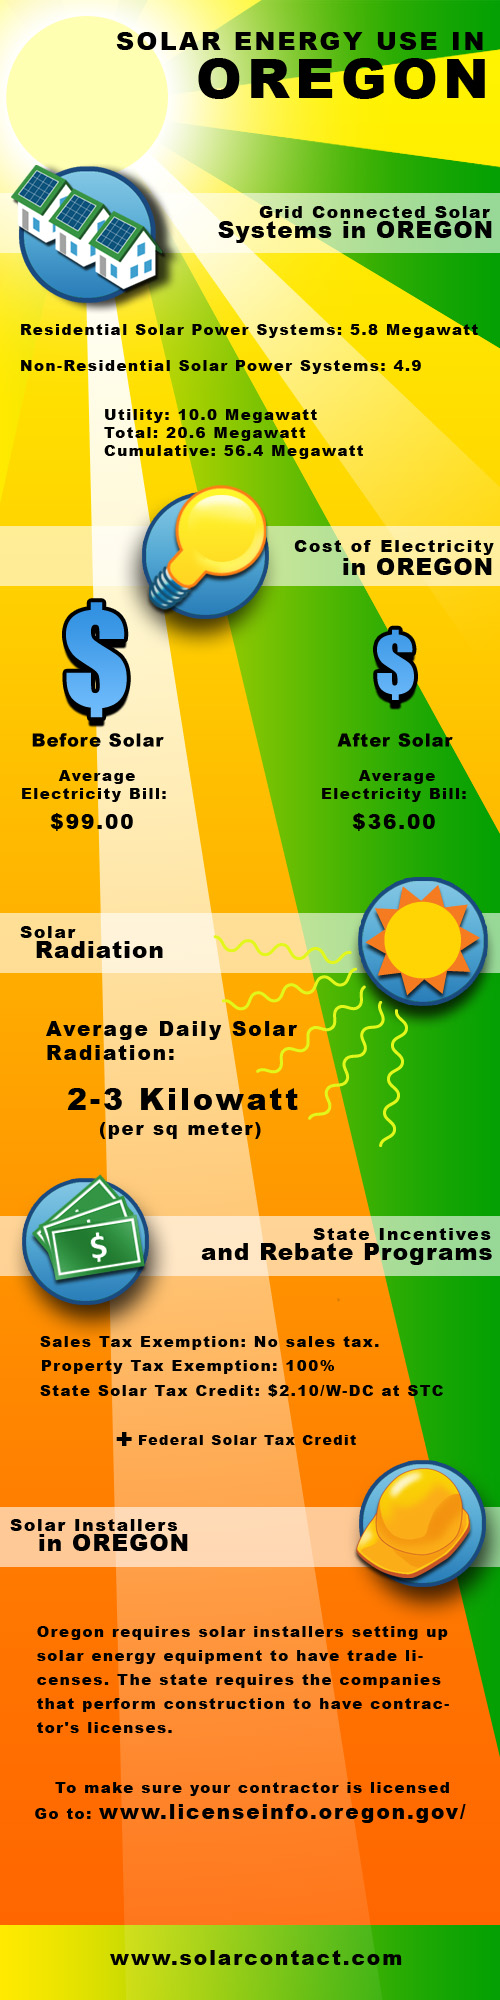 Fact Sheet Solar Energy Use in Oregon